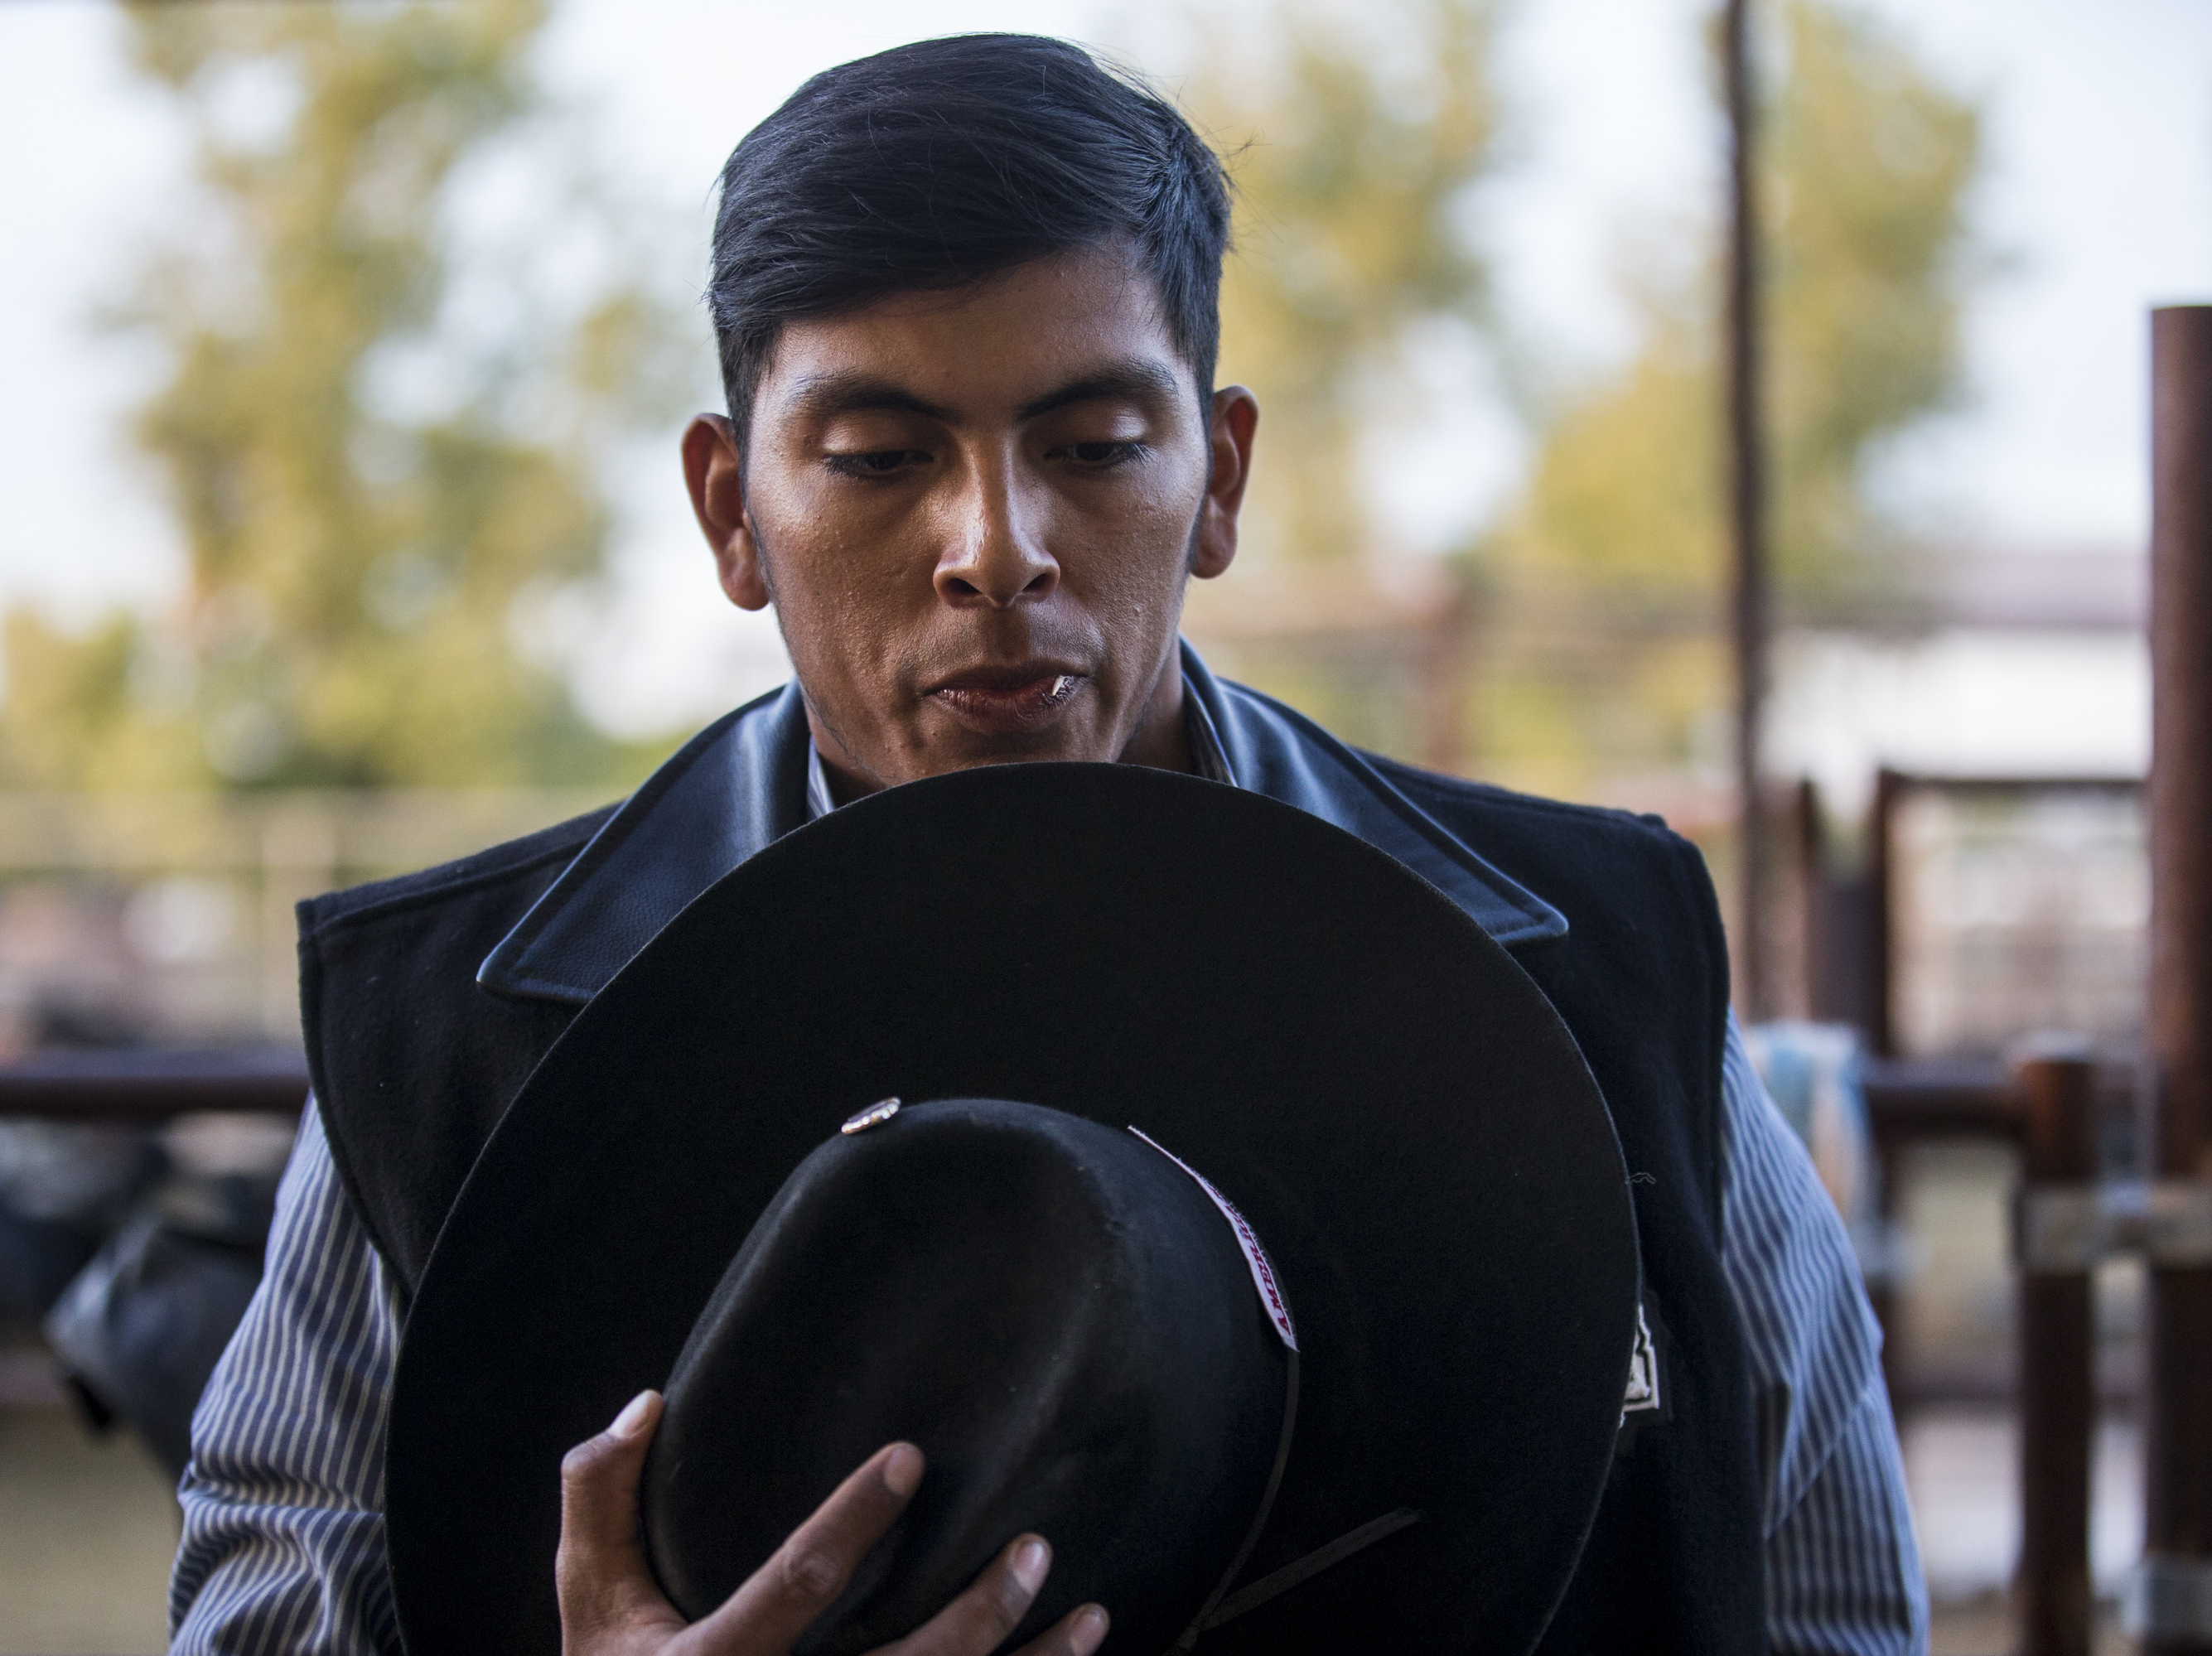 Jalen Joaquin prays during the Gilbert Days Rodeo on Saturday, Nov. 17, 2018, in Gilbert, Ariz.